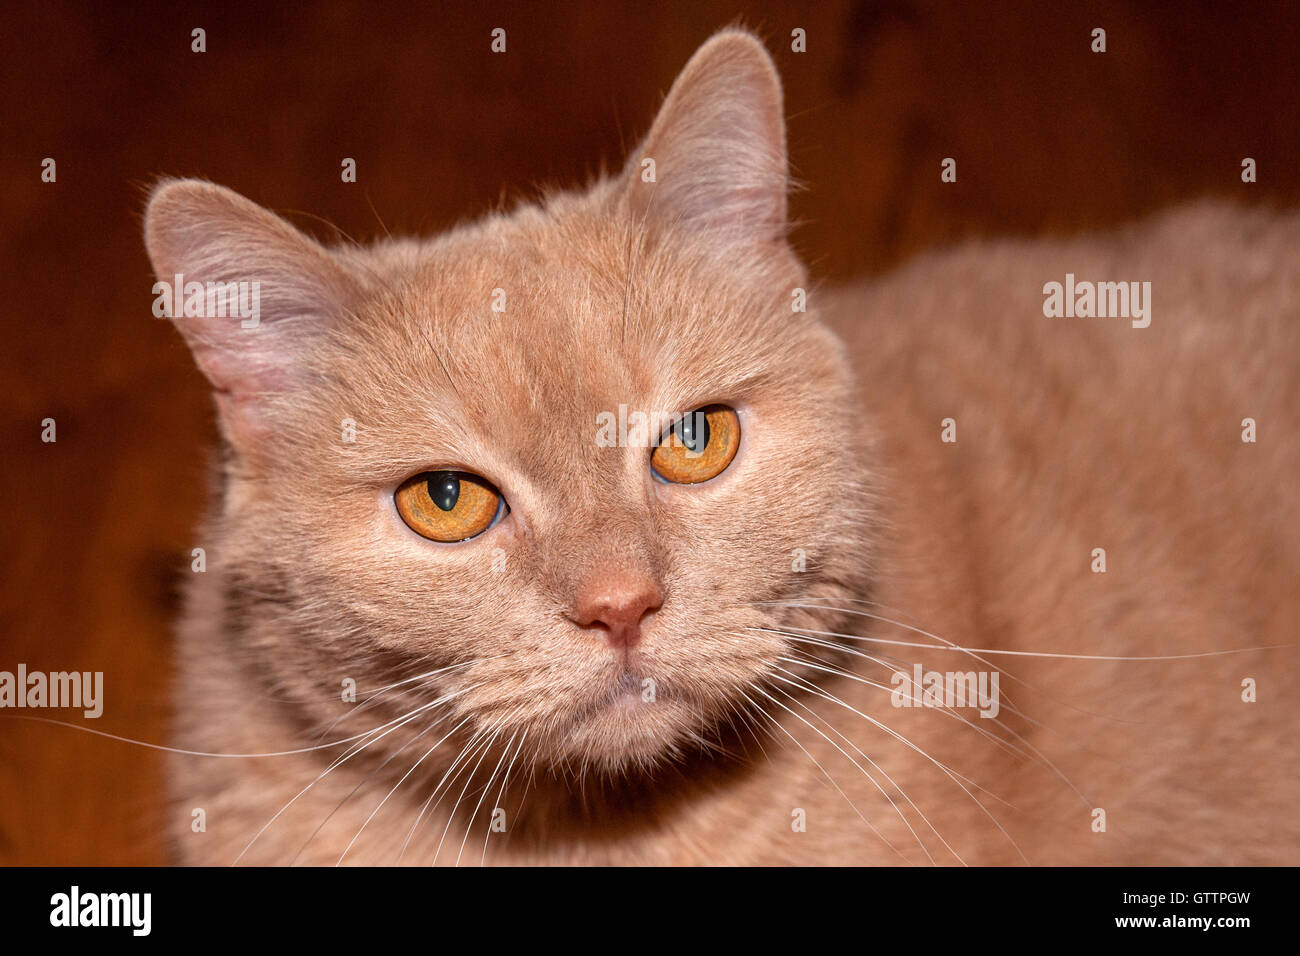 Closeup view of seriously looking fawn-colored or beige color cat against dark brown background Stock Photo